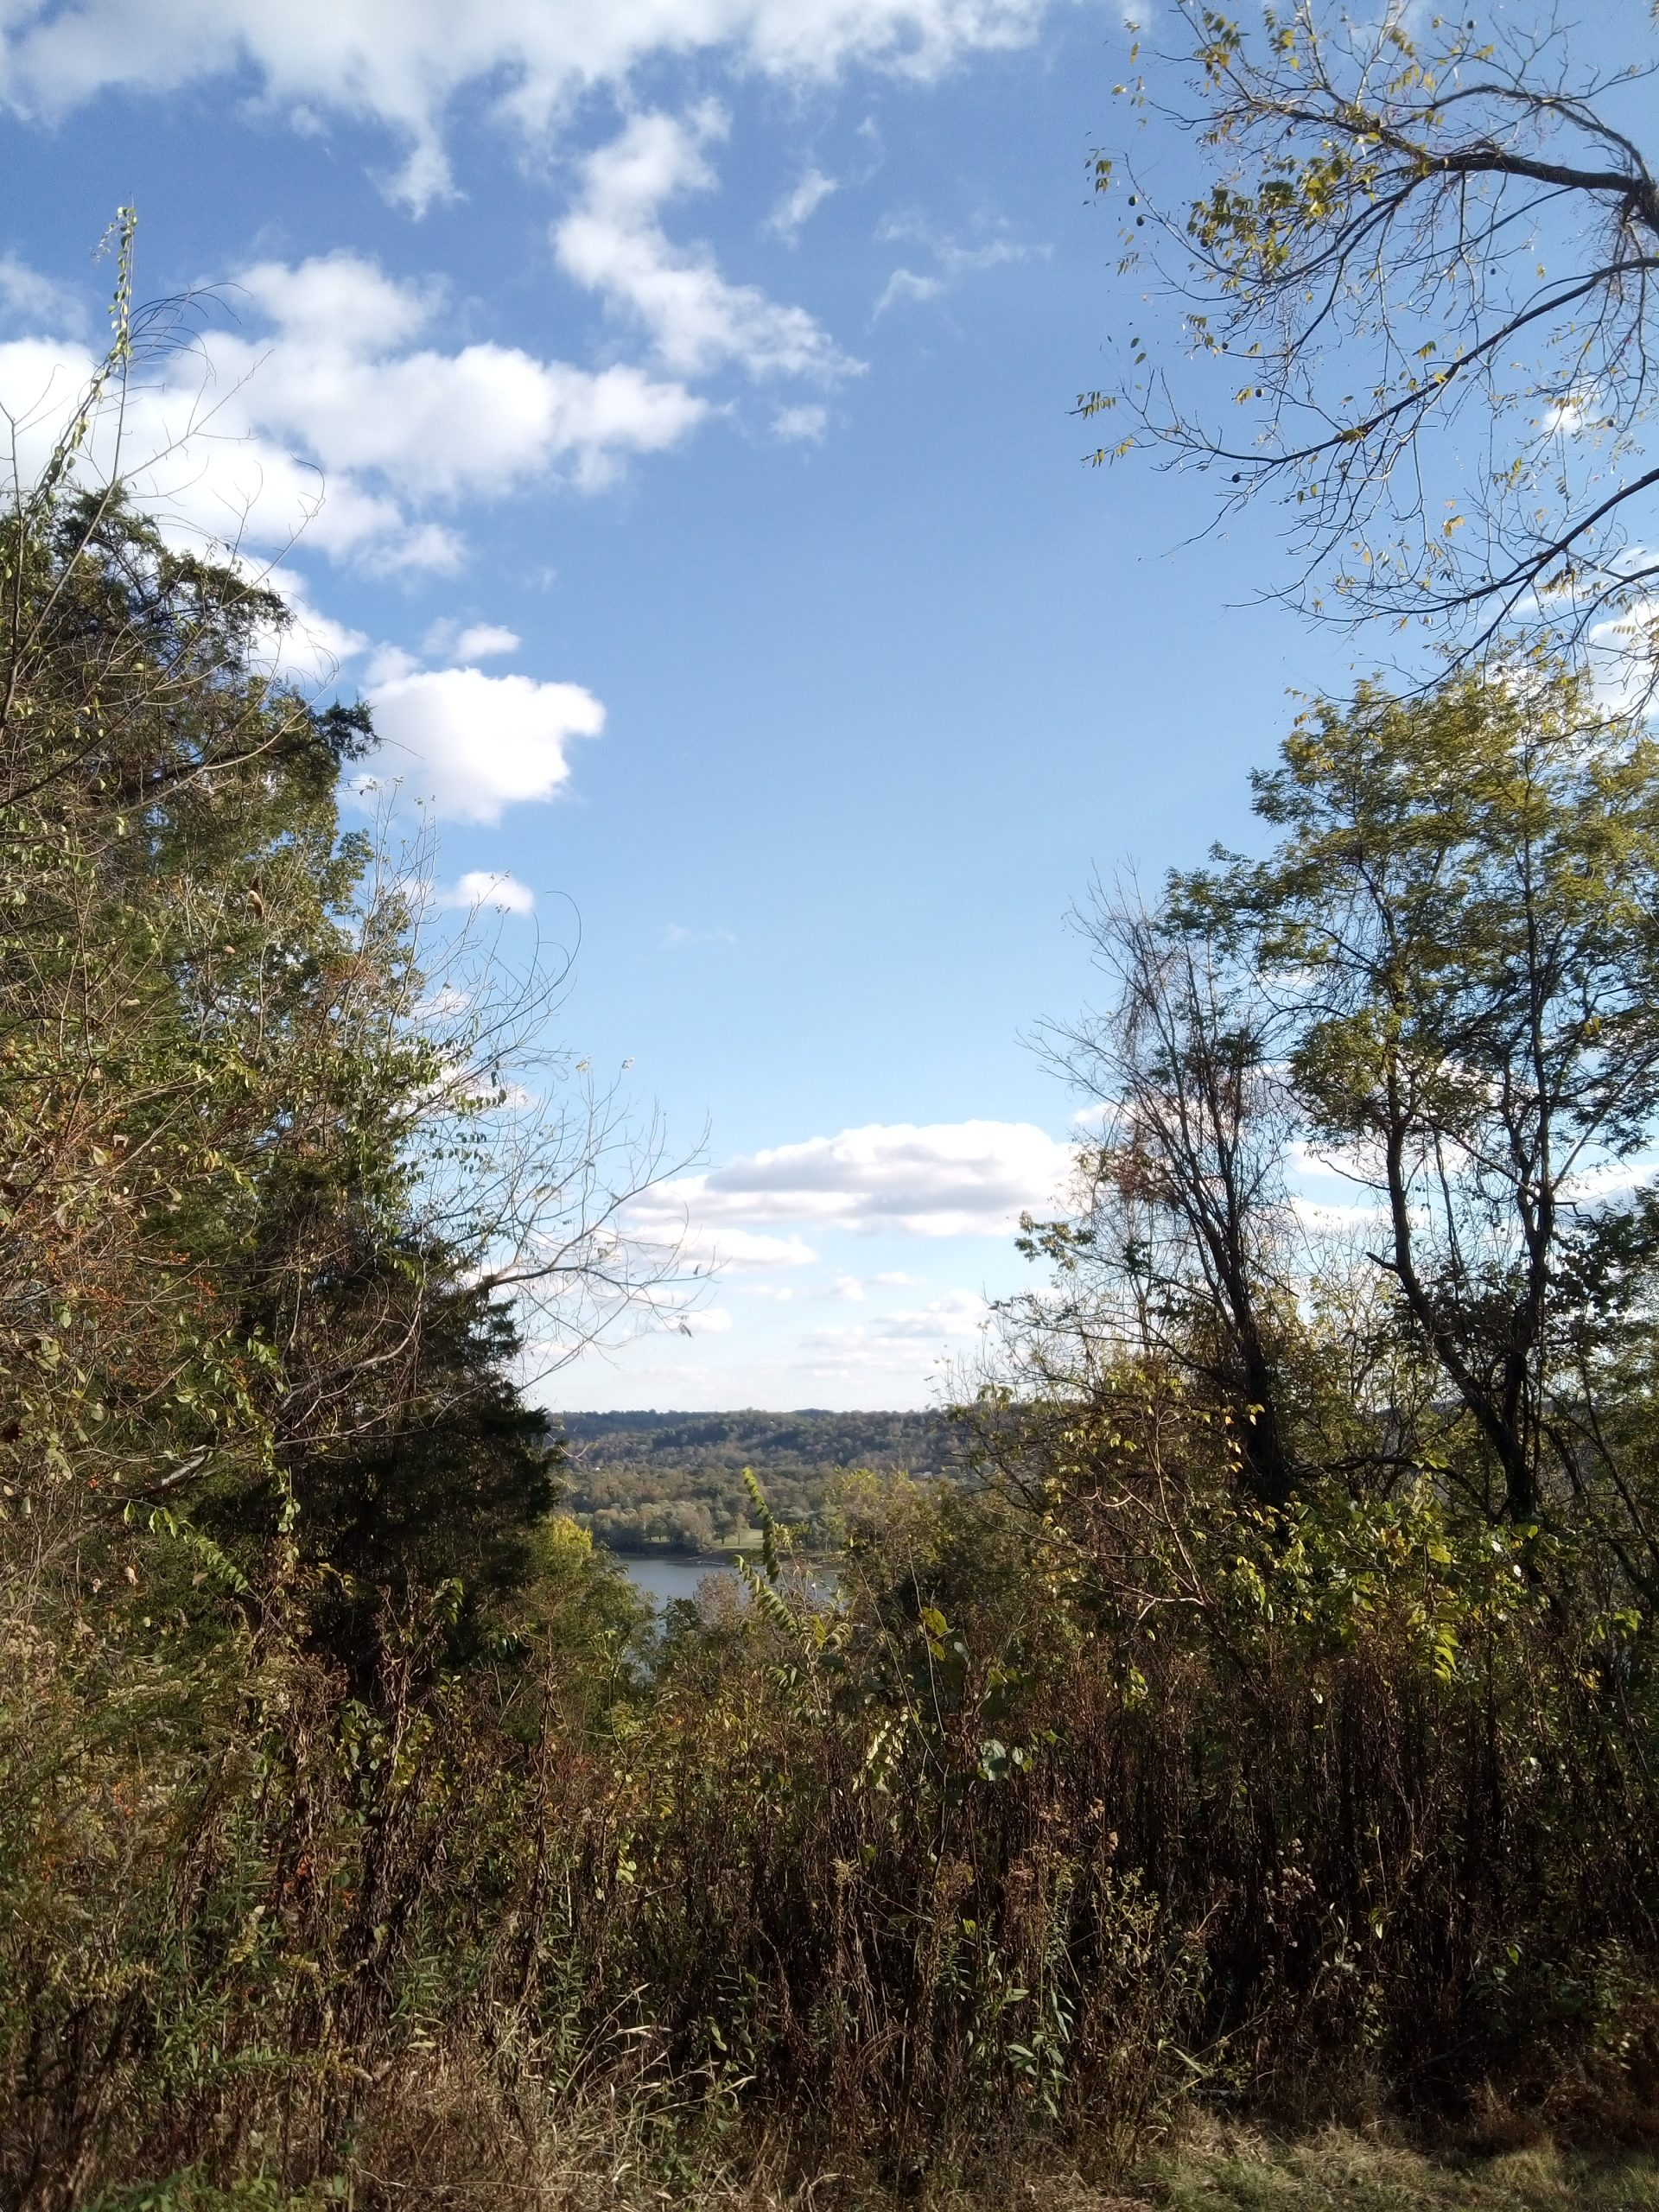 Overlook at Withrow Nature Preserve